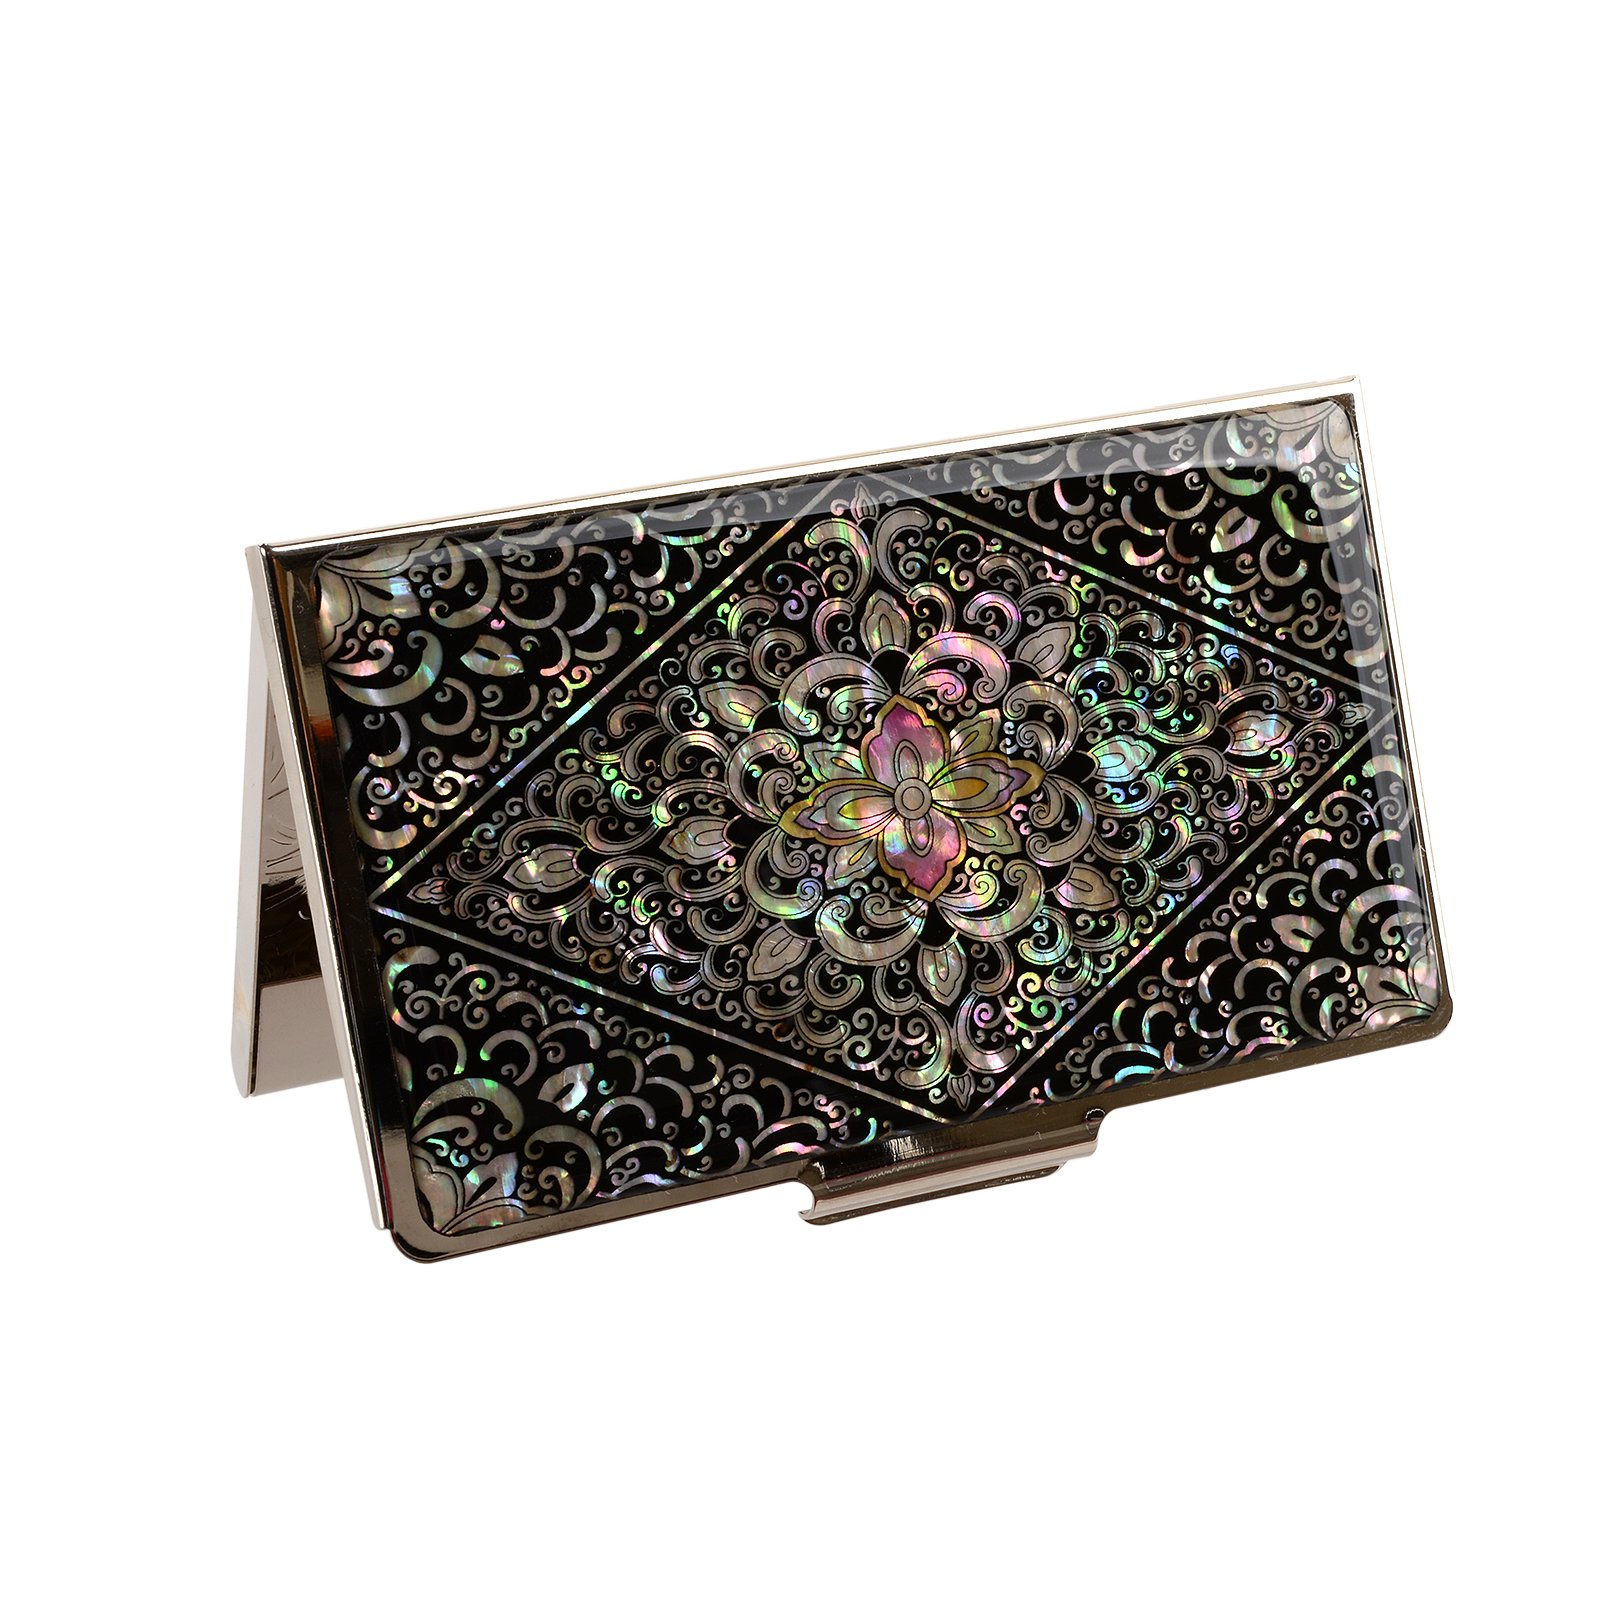 business name card holder stainless steel case Mother of Pearl Art Arabesque by MOP antique (Image #2)